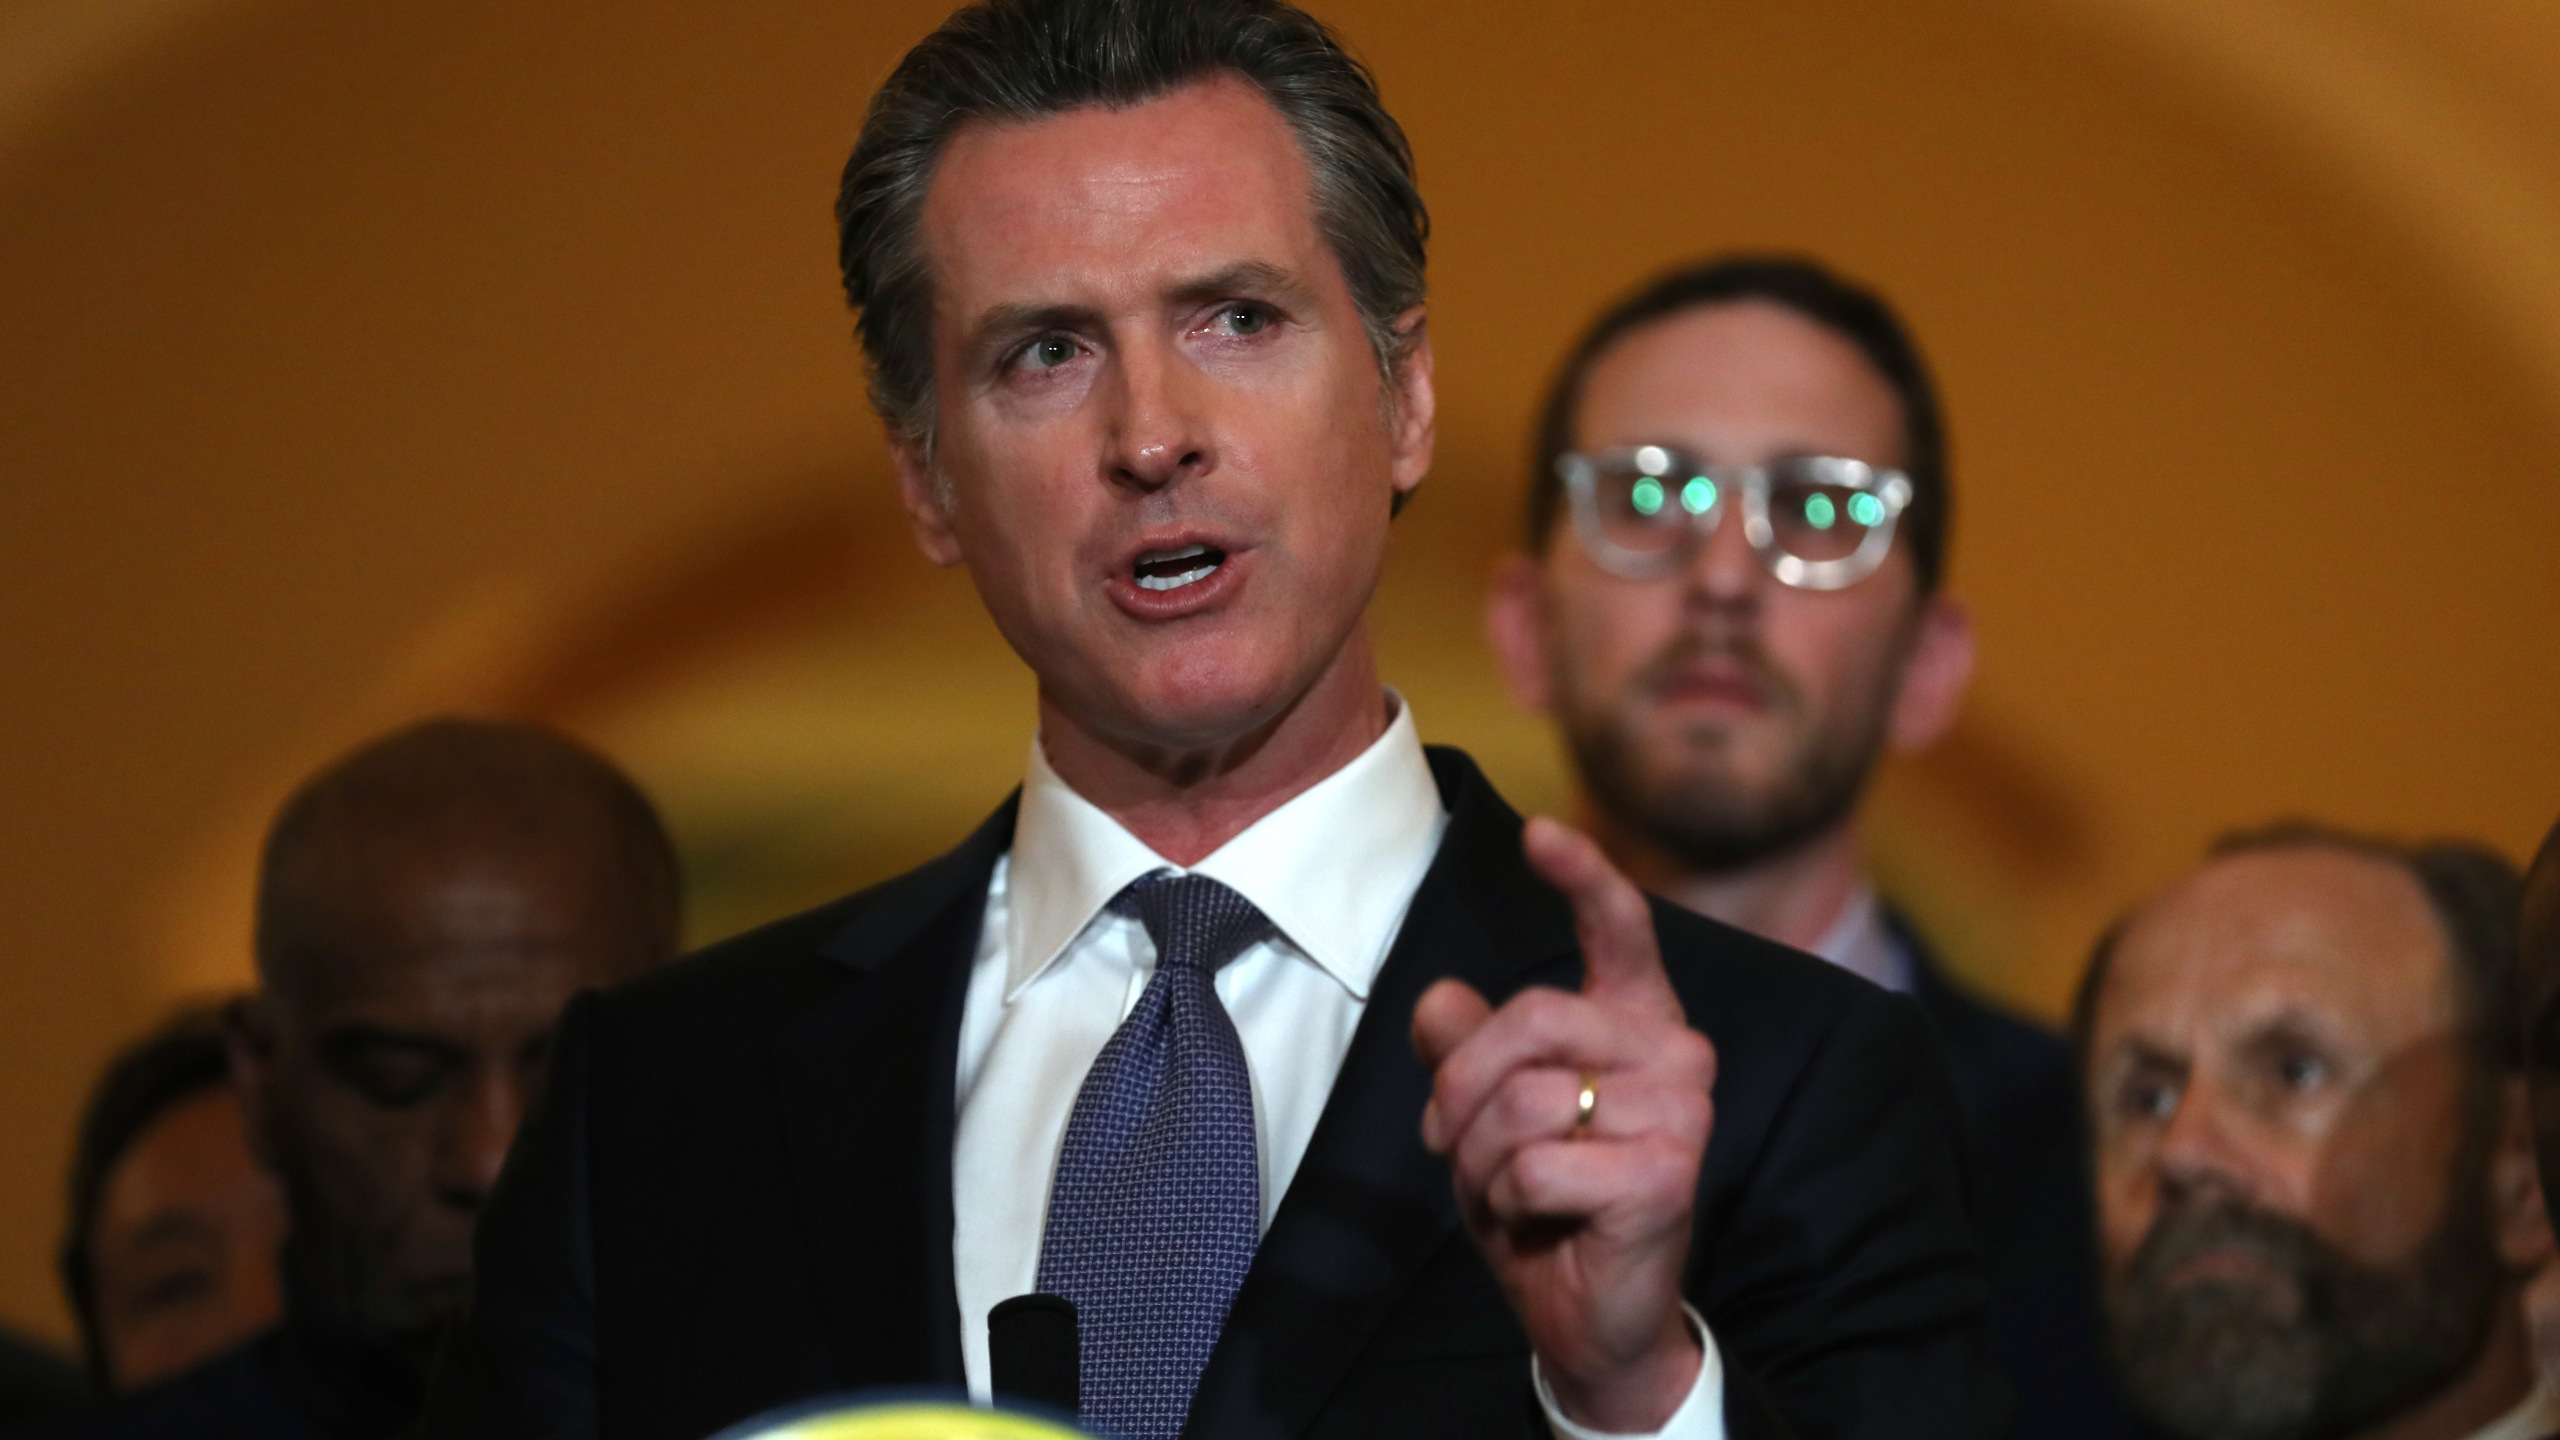 California Gov. Gavin Newsom speaks during a news conference at the California State Capitol on March 13, 2019, in Sacramento. (Credit: Justin Sullivan/Getty Images)